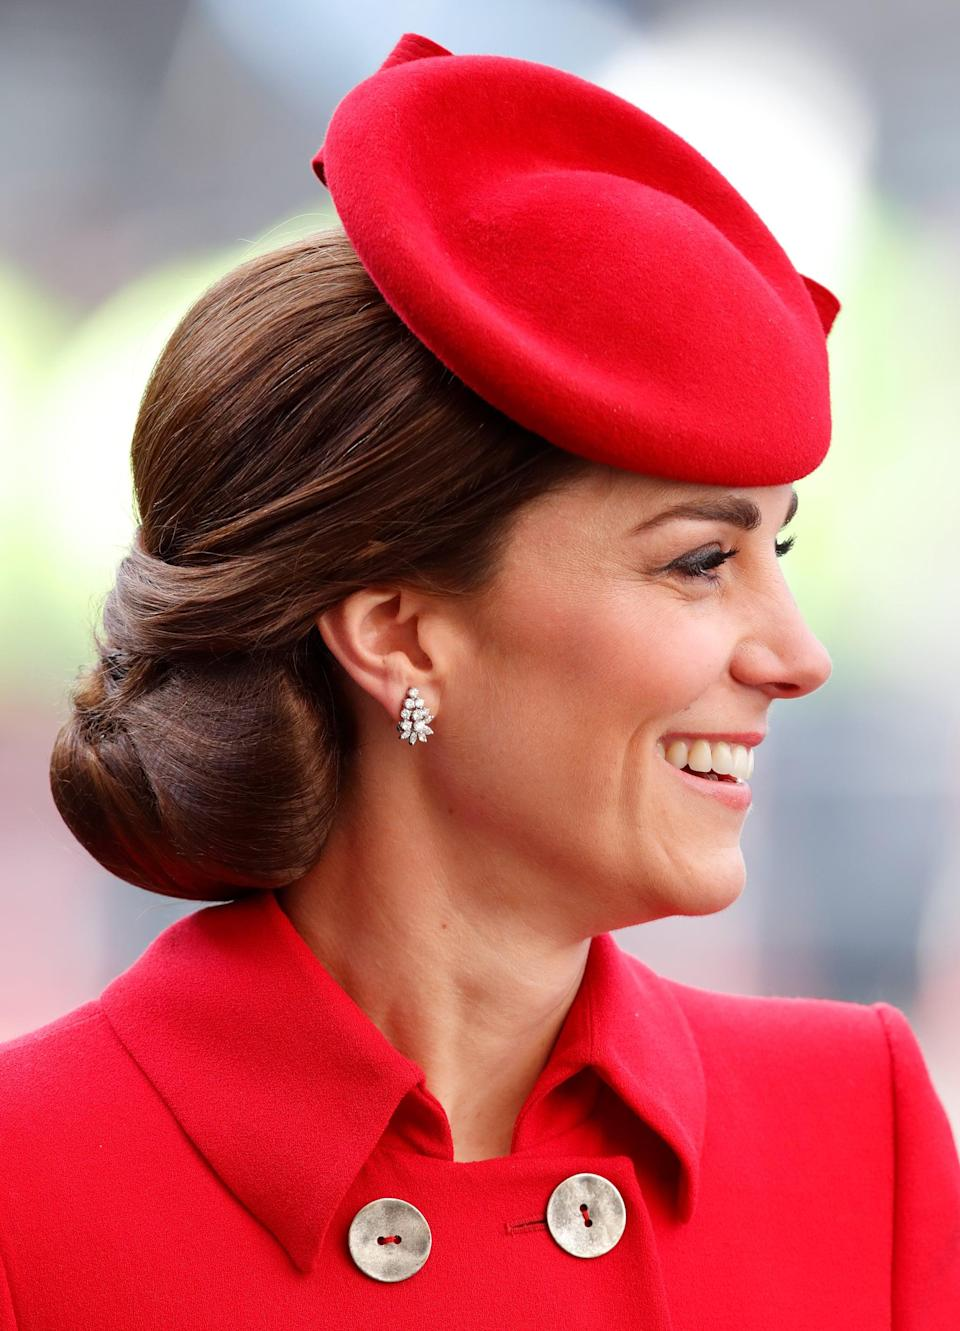 <p>We don't really know what to call this hairstyle (a chignon? an updo? a hair sculpture?), but what we <em>do</em> know is that the low, tucked-up style is a go-to for the Duchess of Cambridge's many royal engagements. </p>